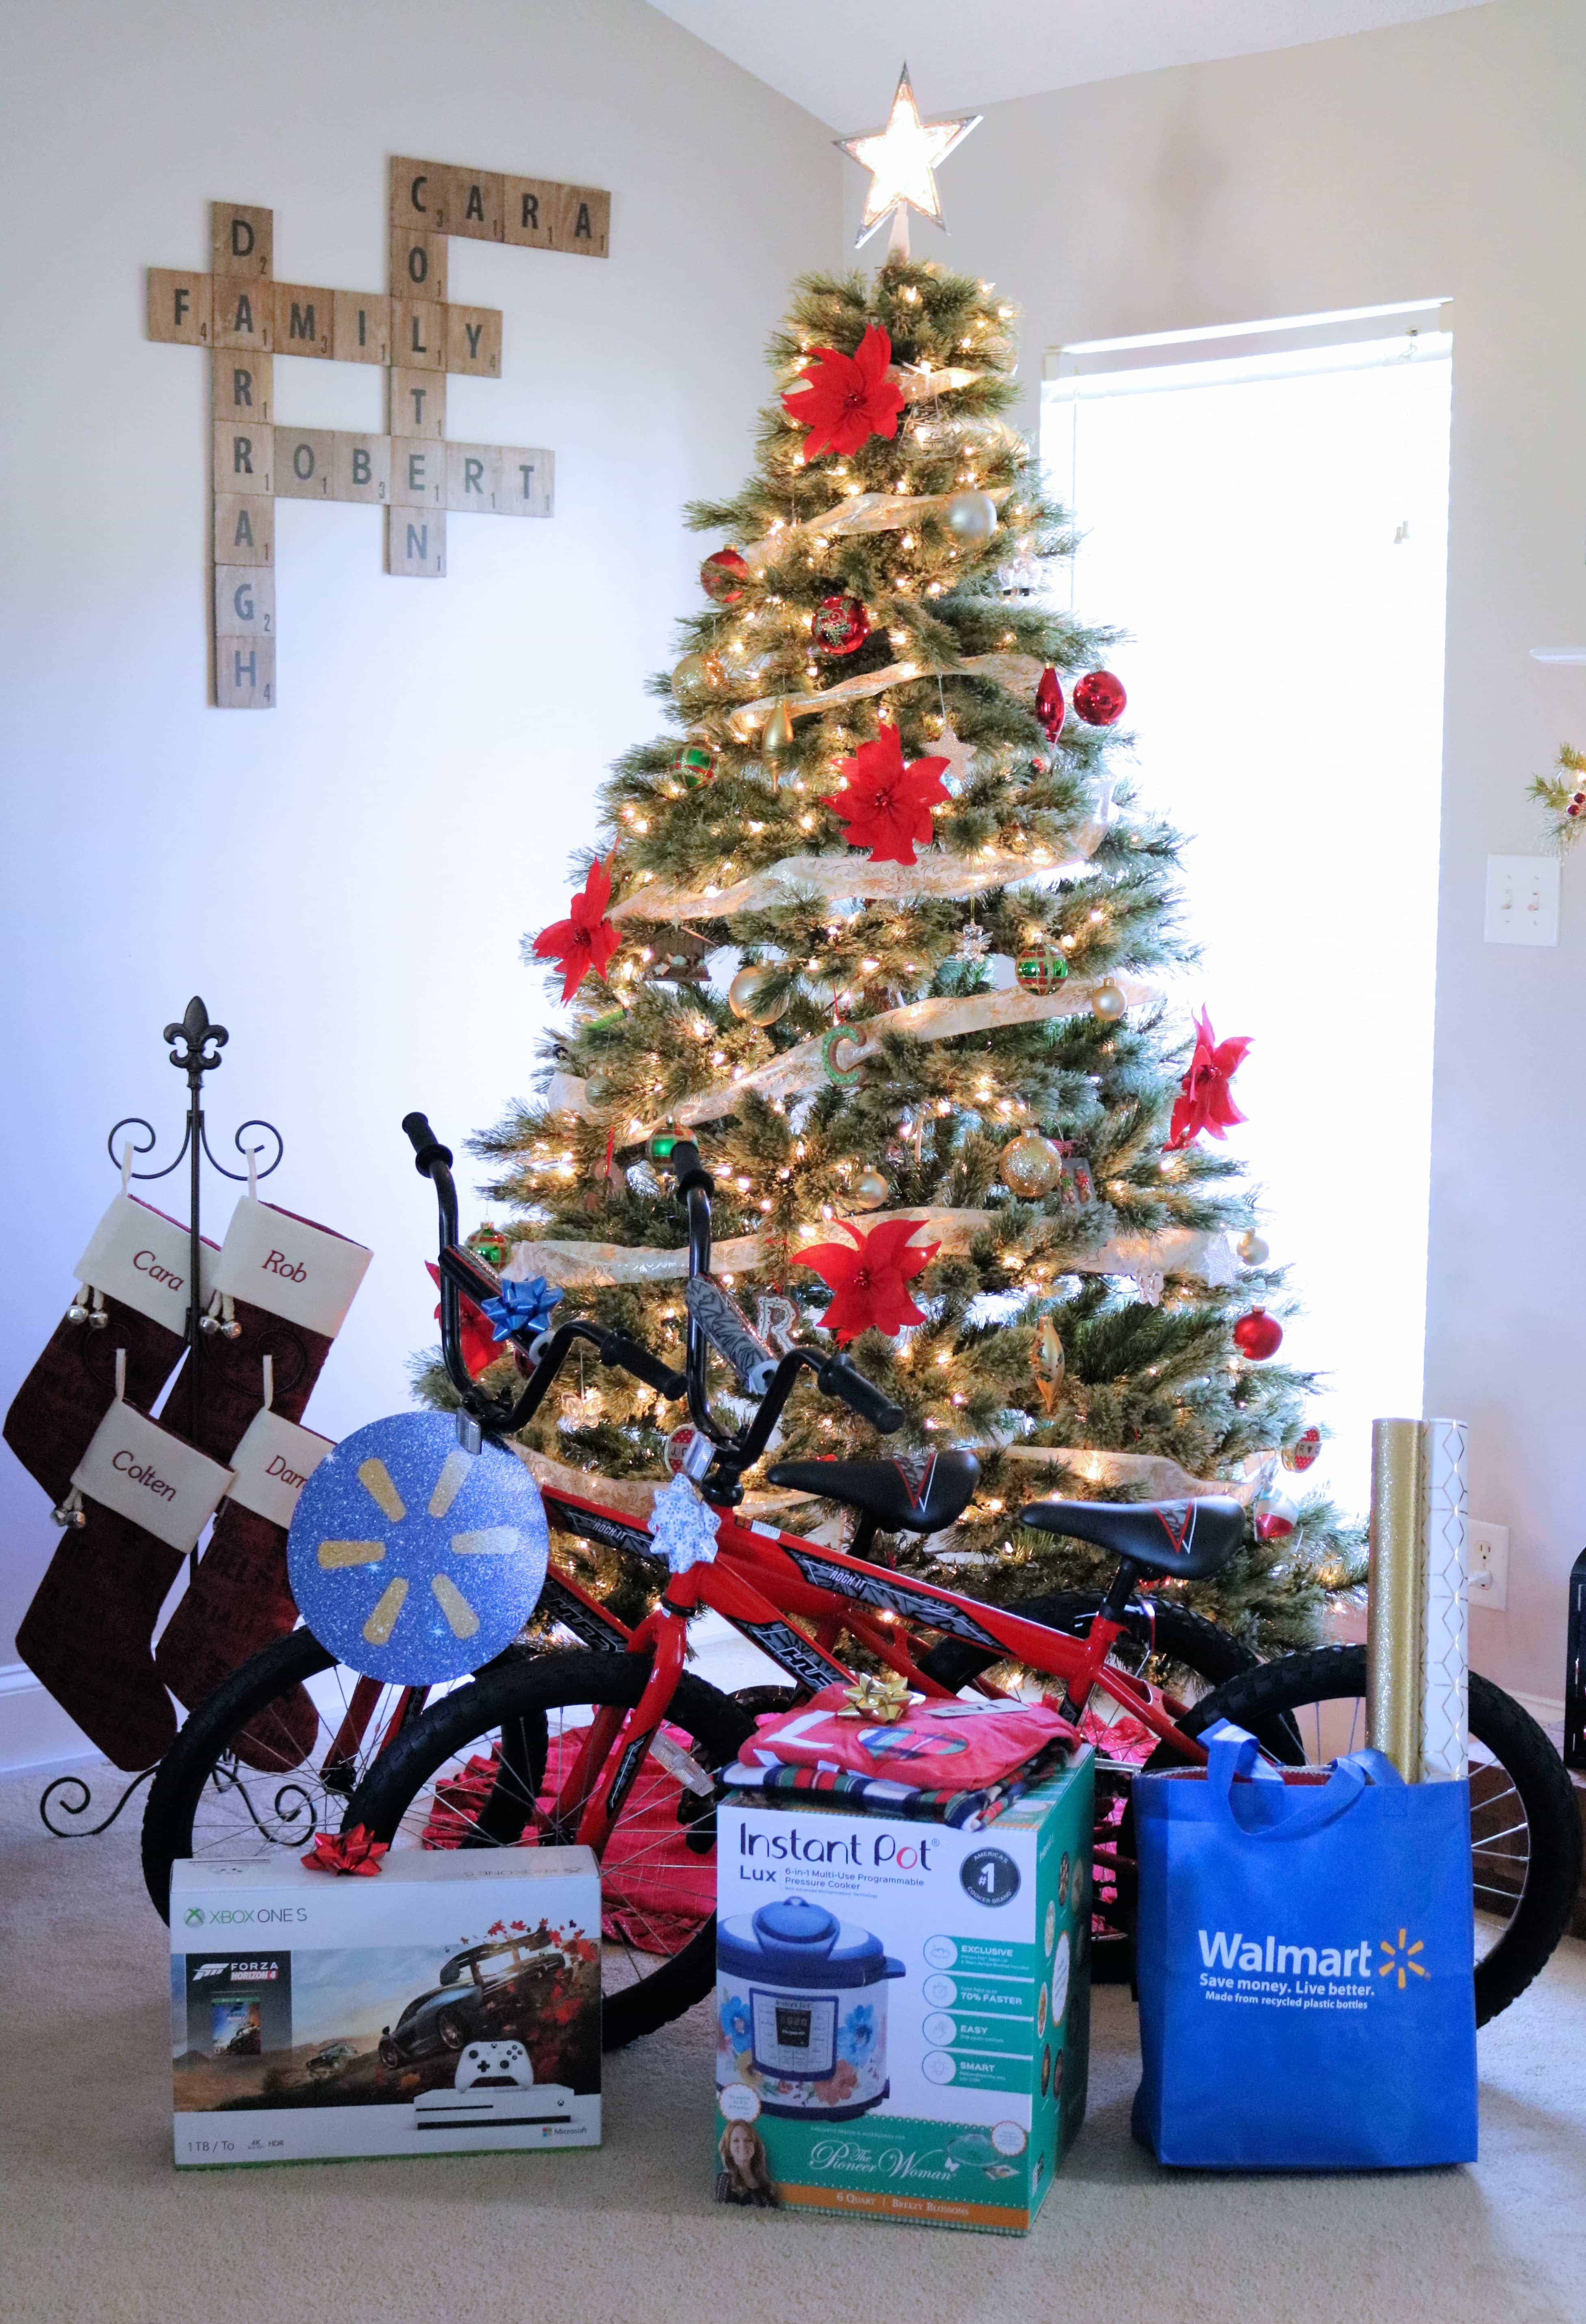 Still searching for the perfect Christmas gifts for everyone on your Christmas list? Then you'll love this roundup of the Top Christmas Gifts at Walmart to buy this year, including new, exclusive items you won't find anywhere else! #sponsored #WalmartTopGifts